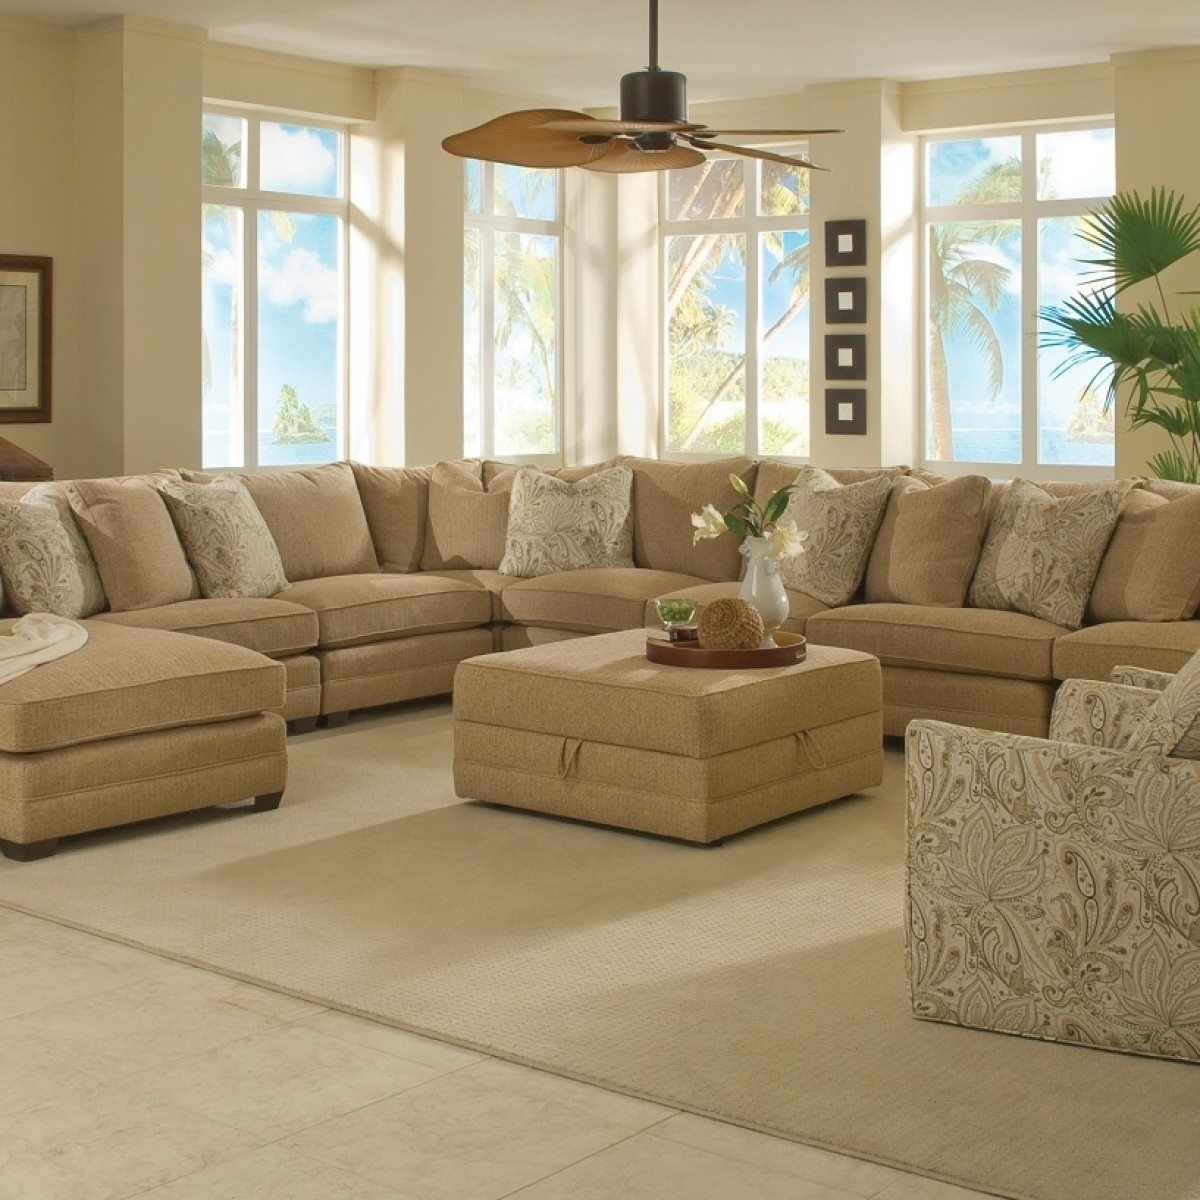 2018 Sectional Sofa Design: Large Sofa Sectionals Chaise Bed Extra Pertaining To Extra Large Sectional Sofas With Chaise (View 3 of 15)